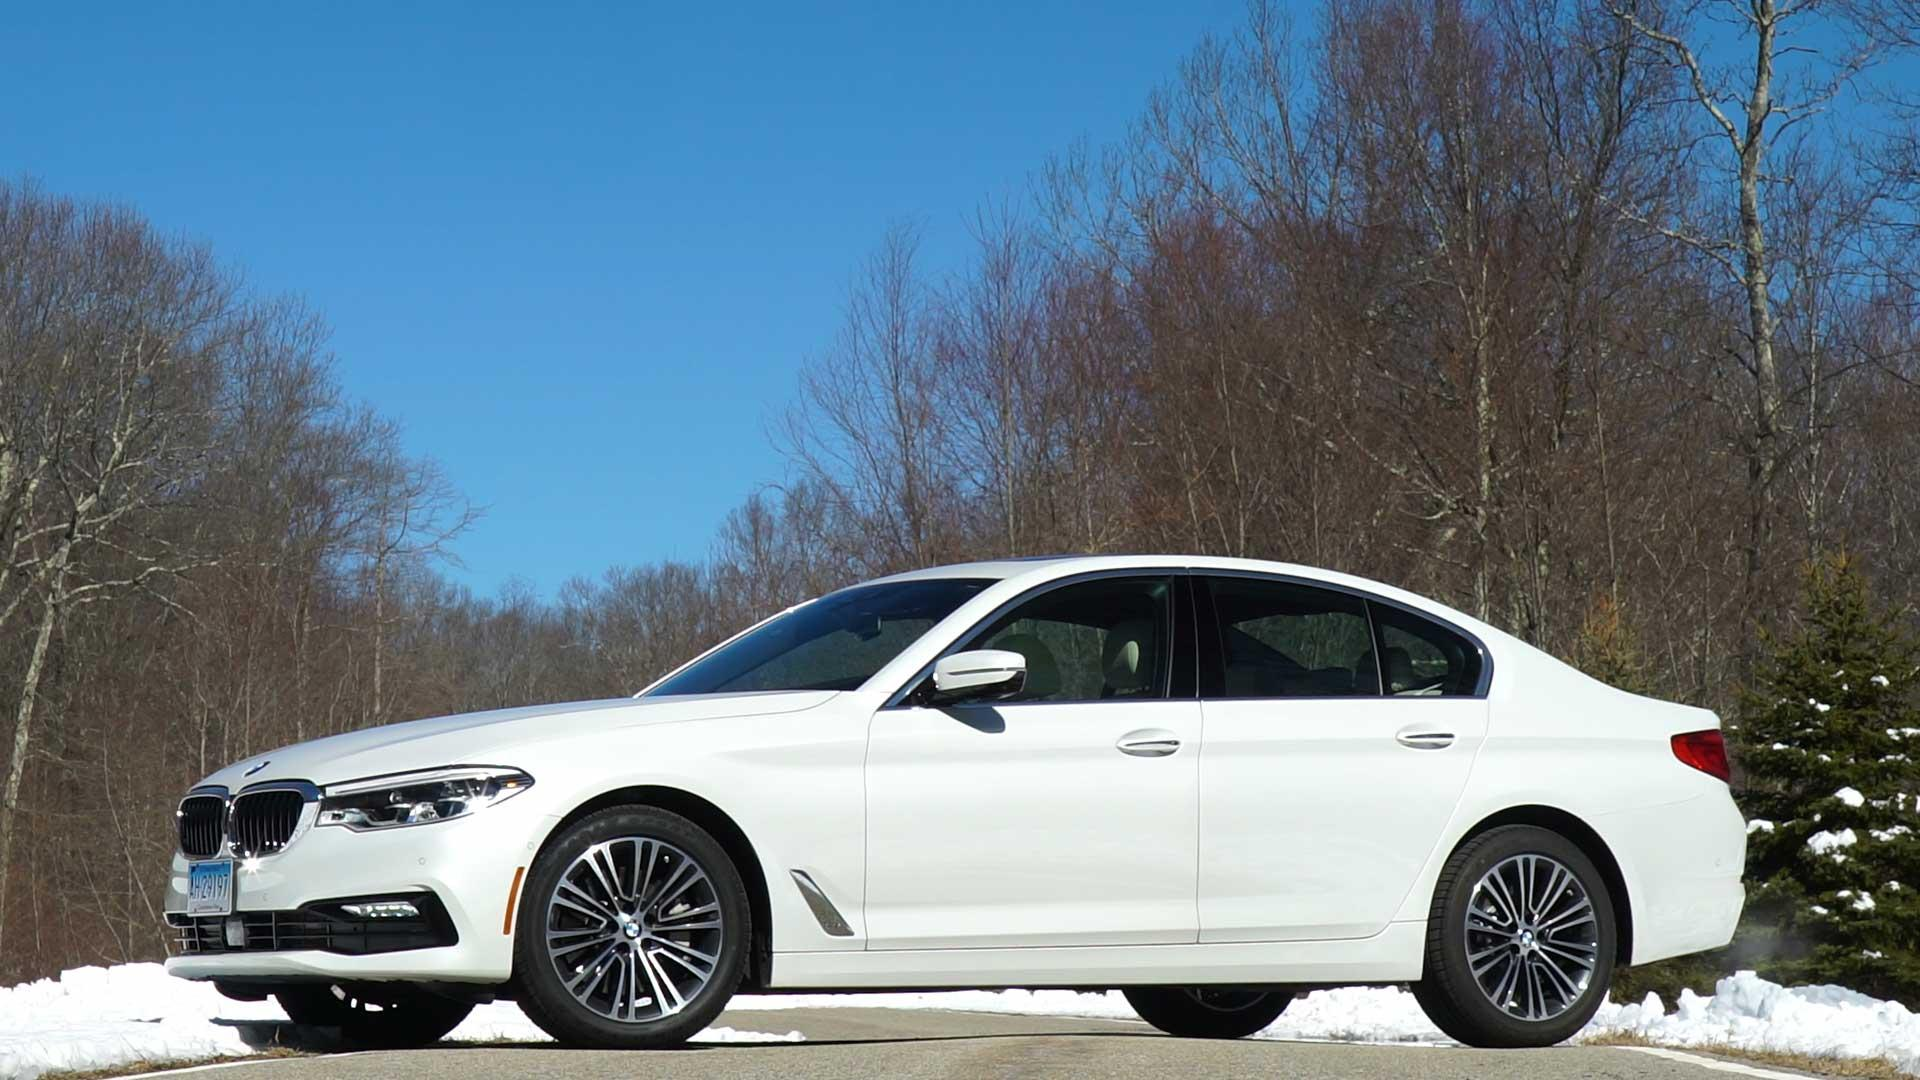 2018 BMW 5 Series Reviews, Ratings, Prices - Consumer Reports